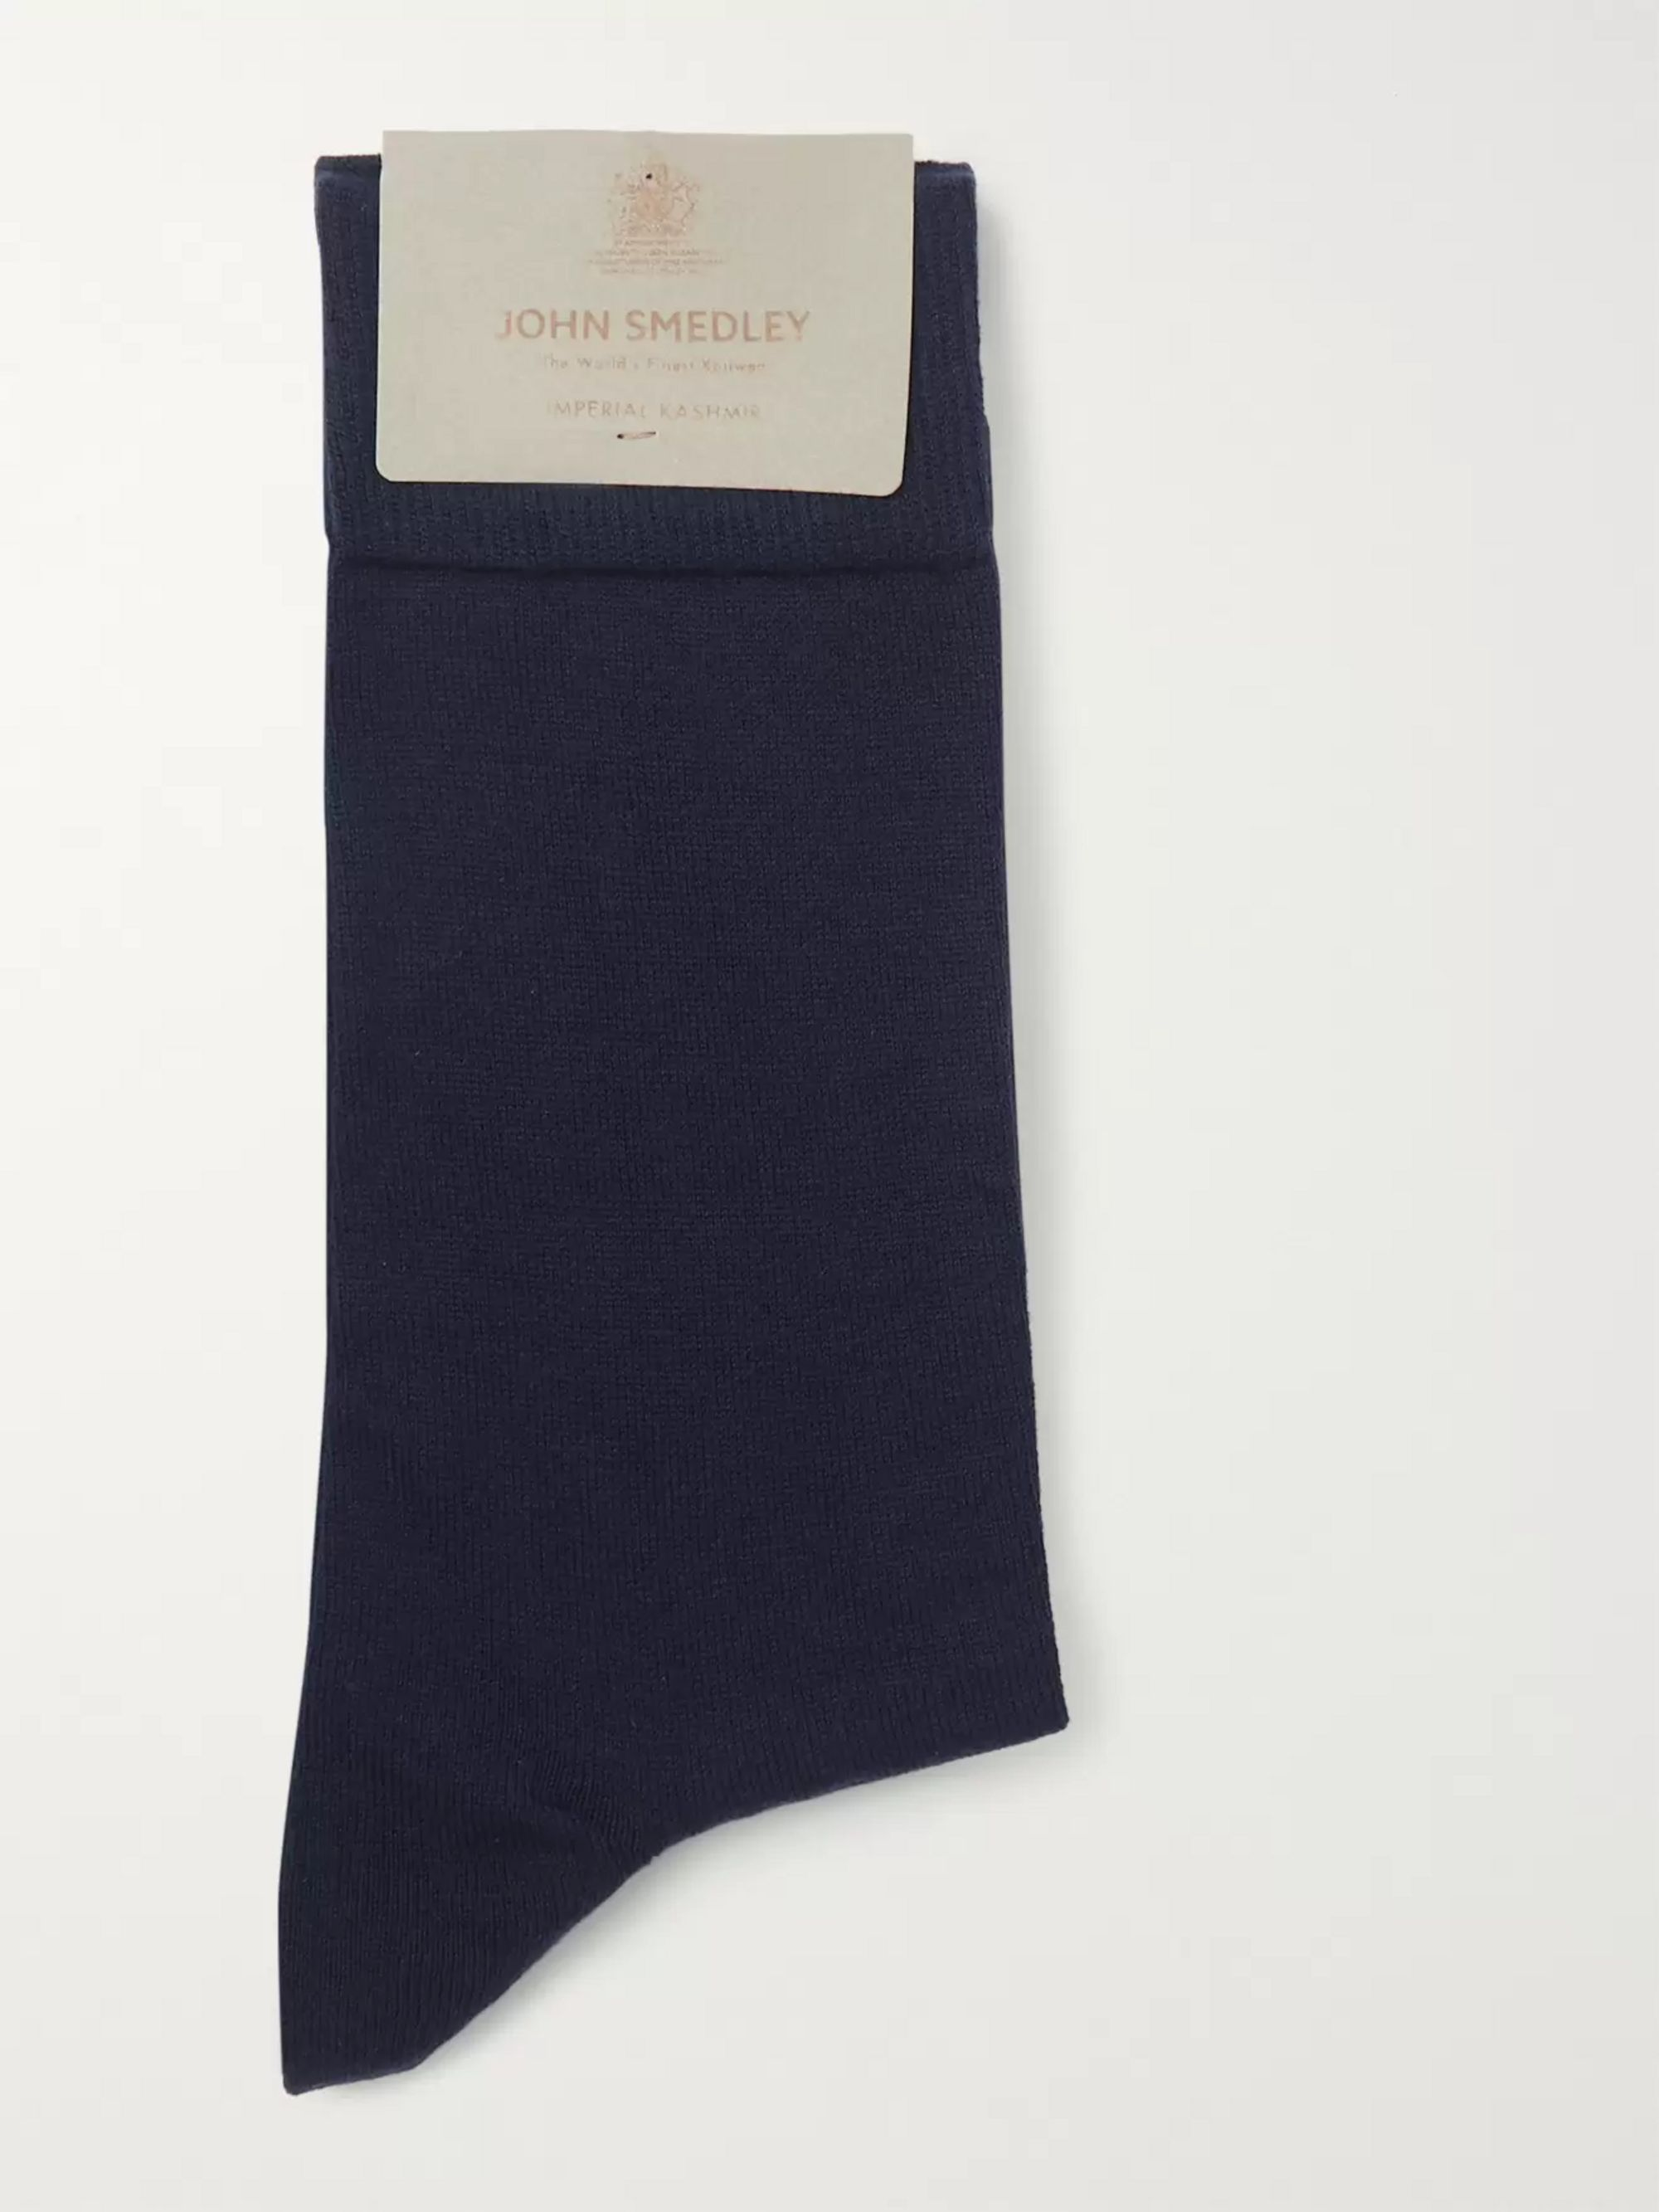 John Smedley Sea Island Cotton-Blend Socks